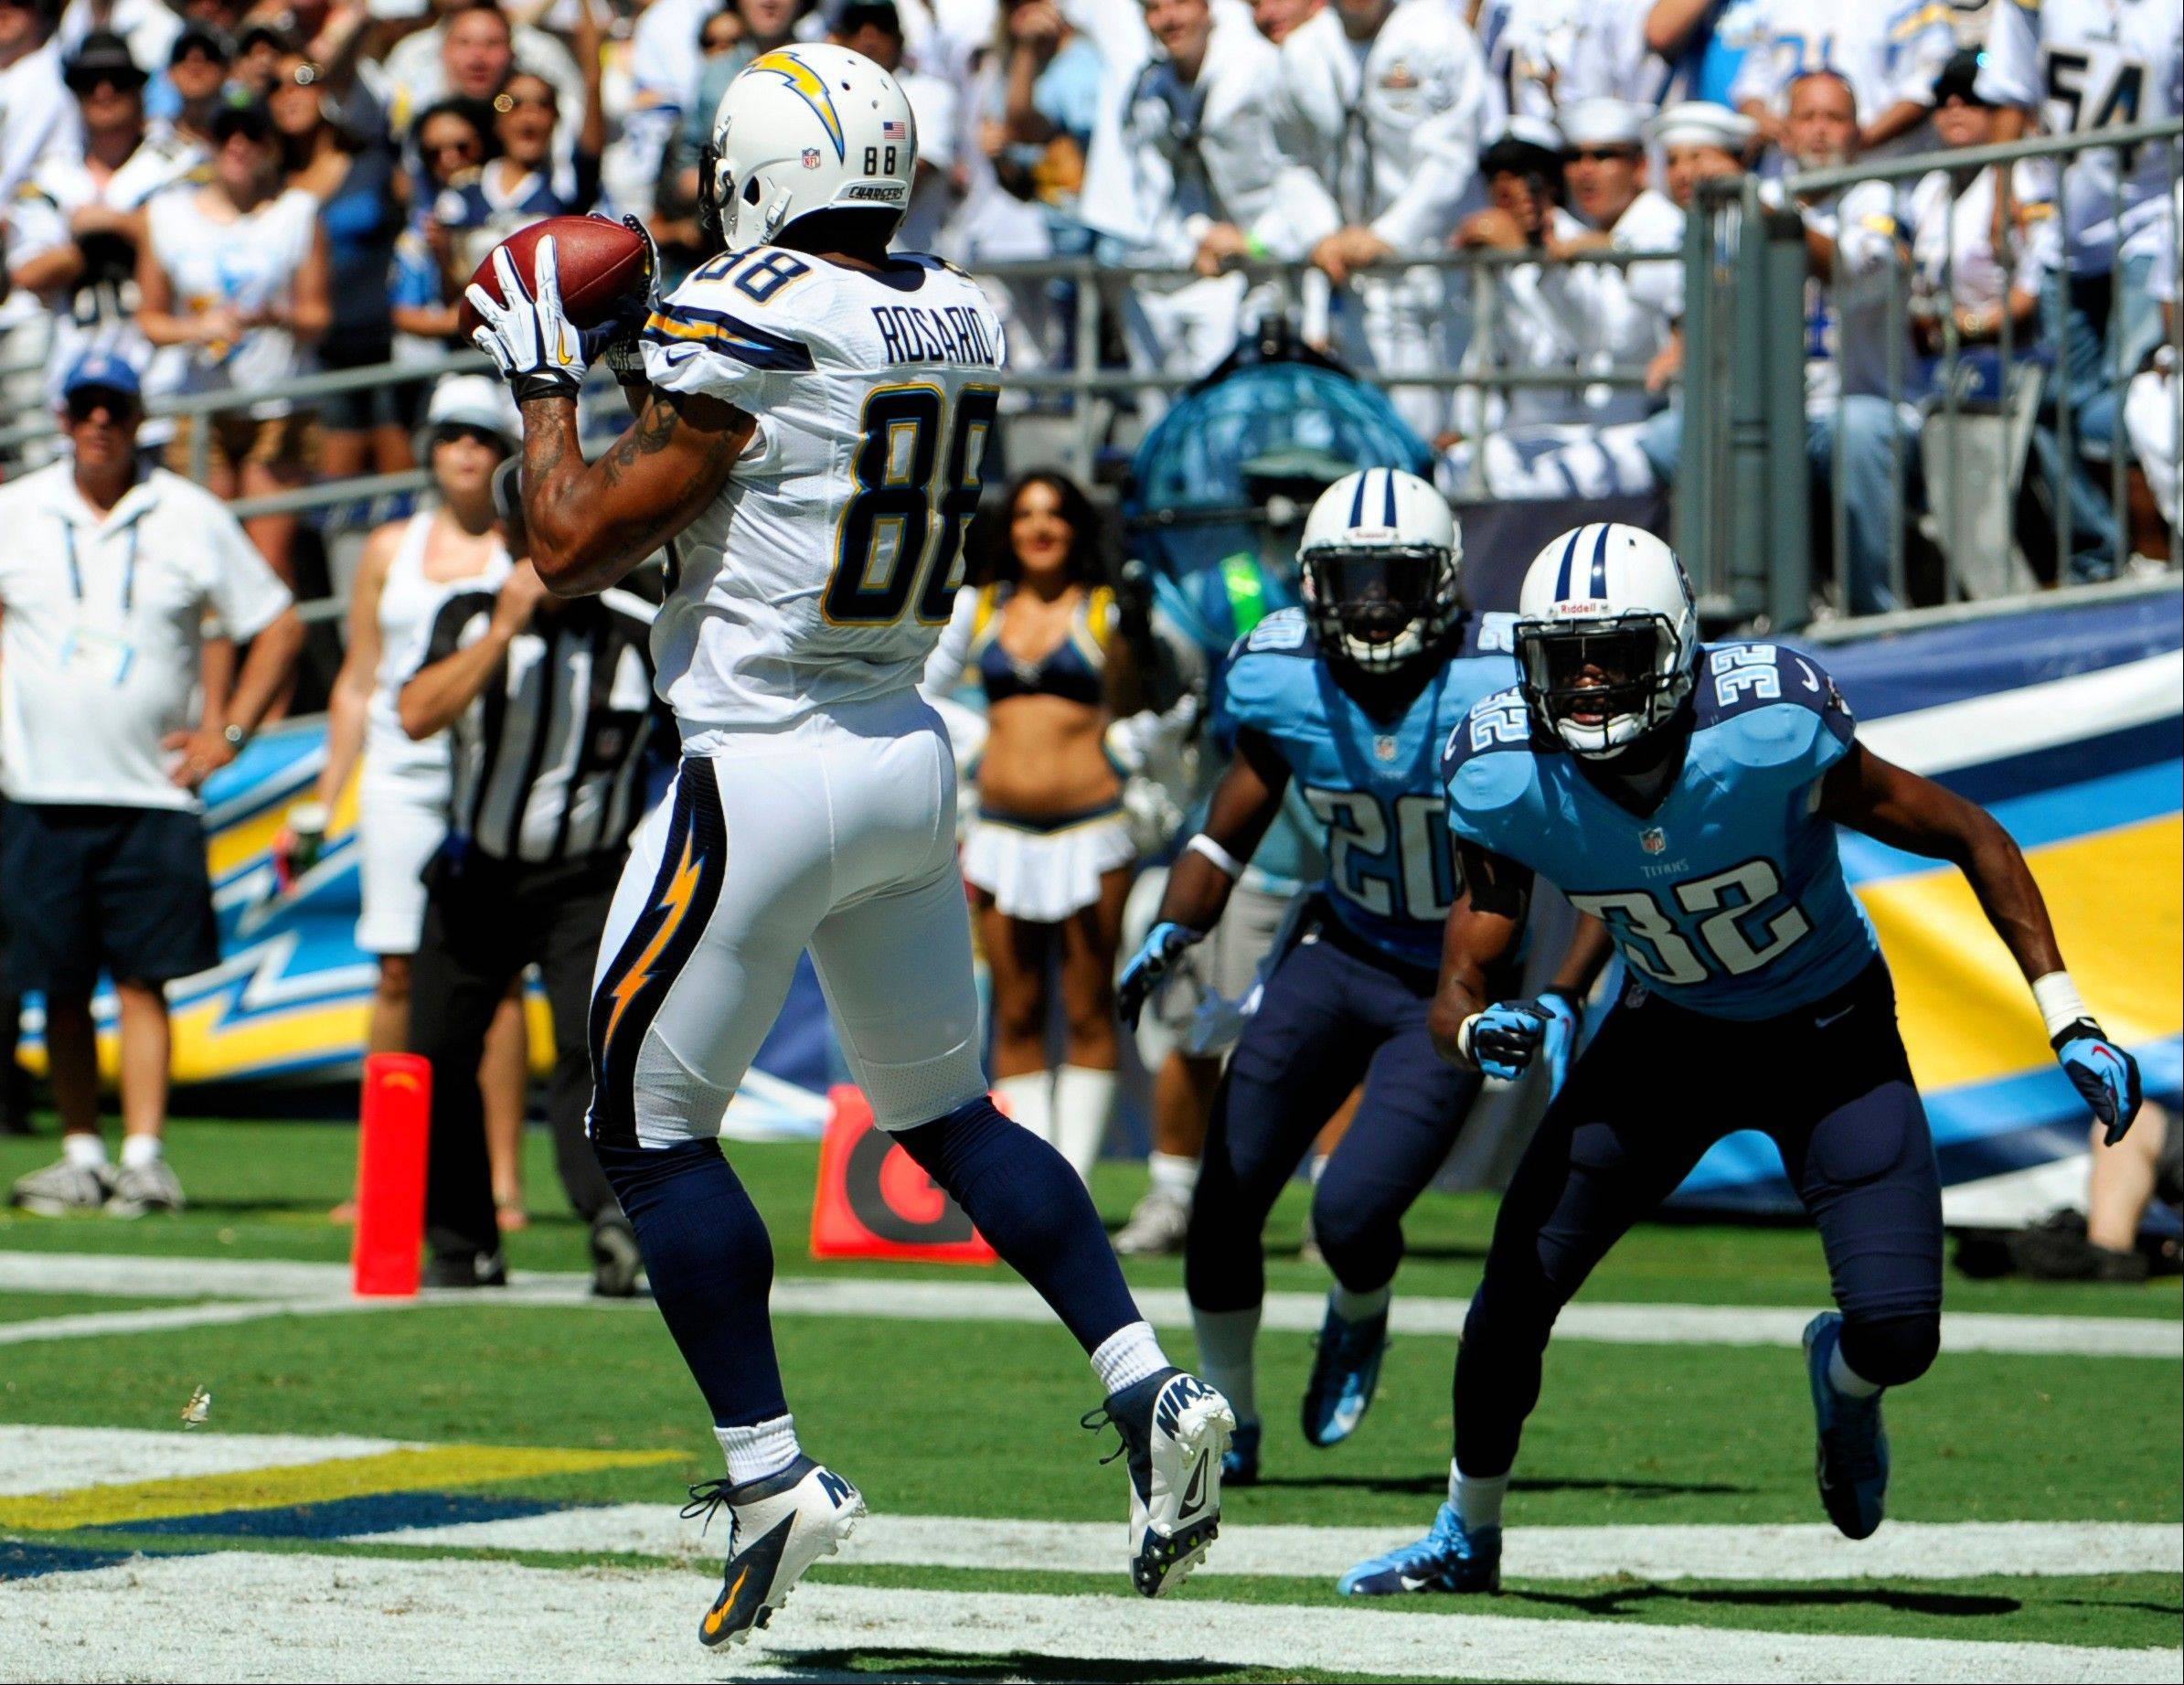 San Diego Chargers tight end Dante Rosario makes a touchdown catch in the end zone as Tennessee Titans strong safety Robert Johnson, right, and cornerback Alterraun Verner, center, watch during the first quarter in San Diego.